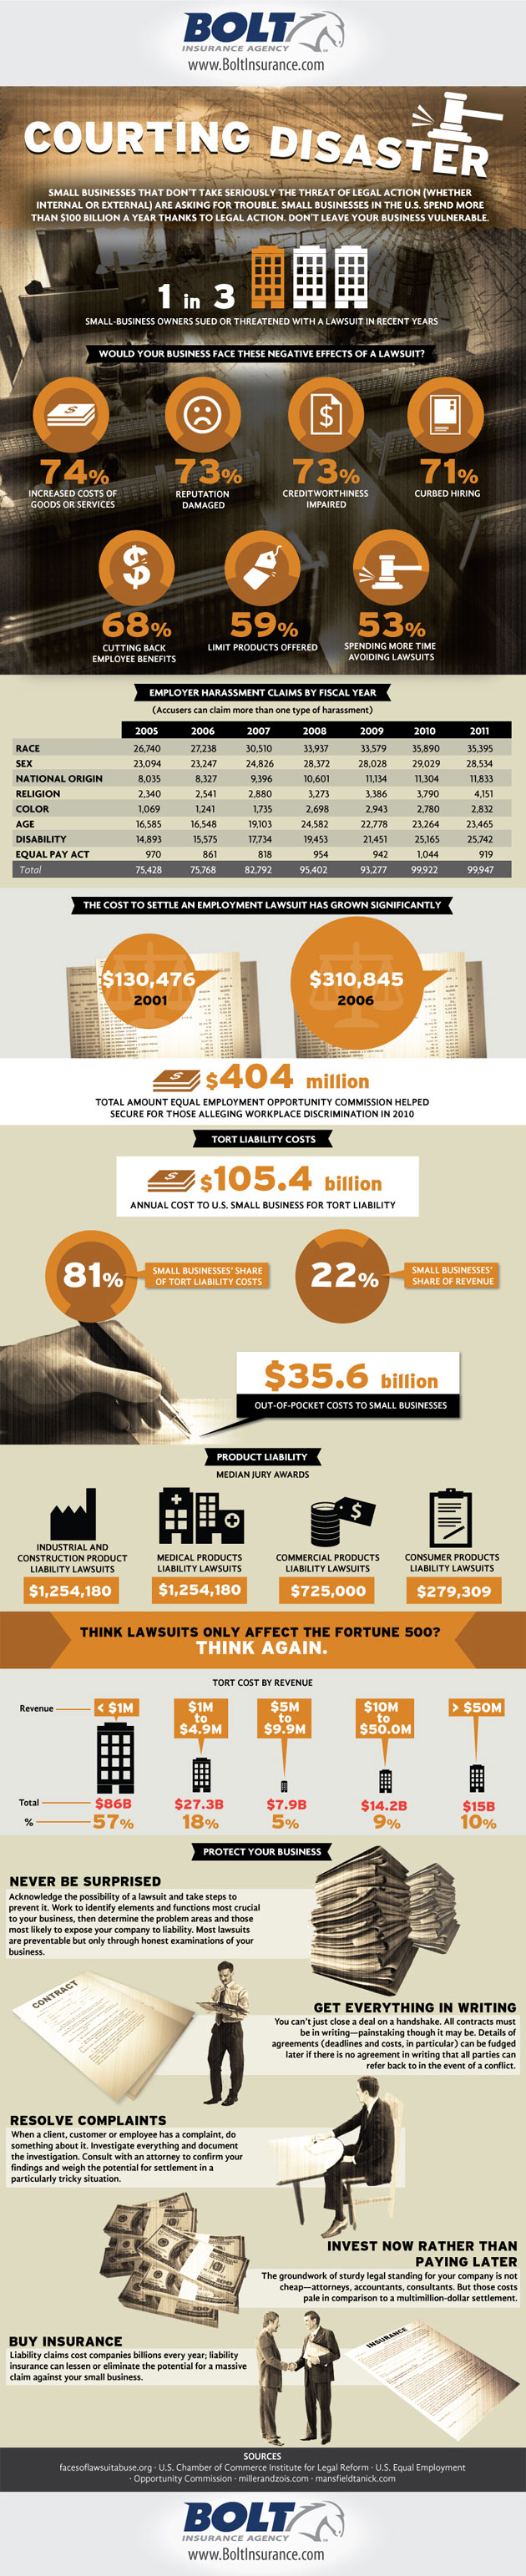 Small Business Lawsuits Infographic